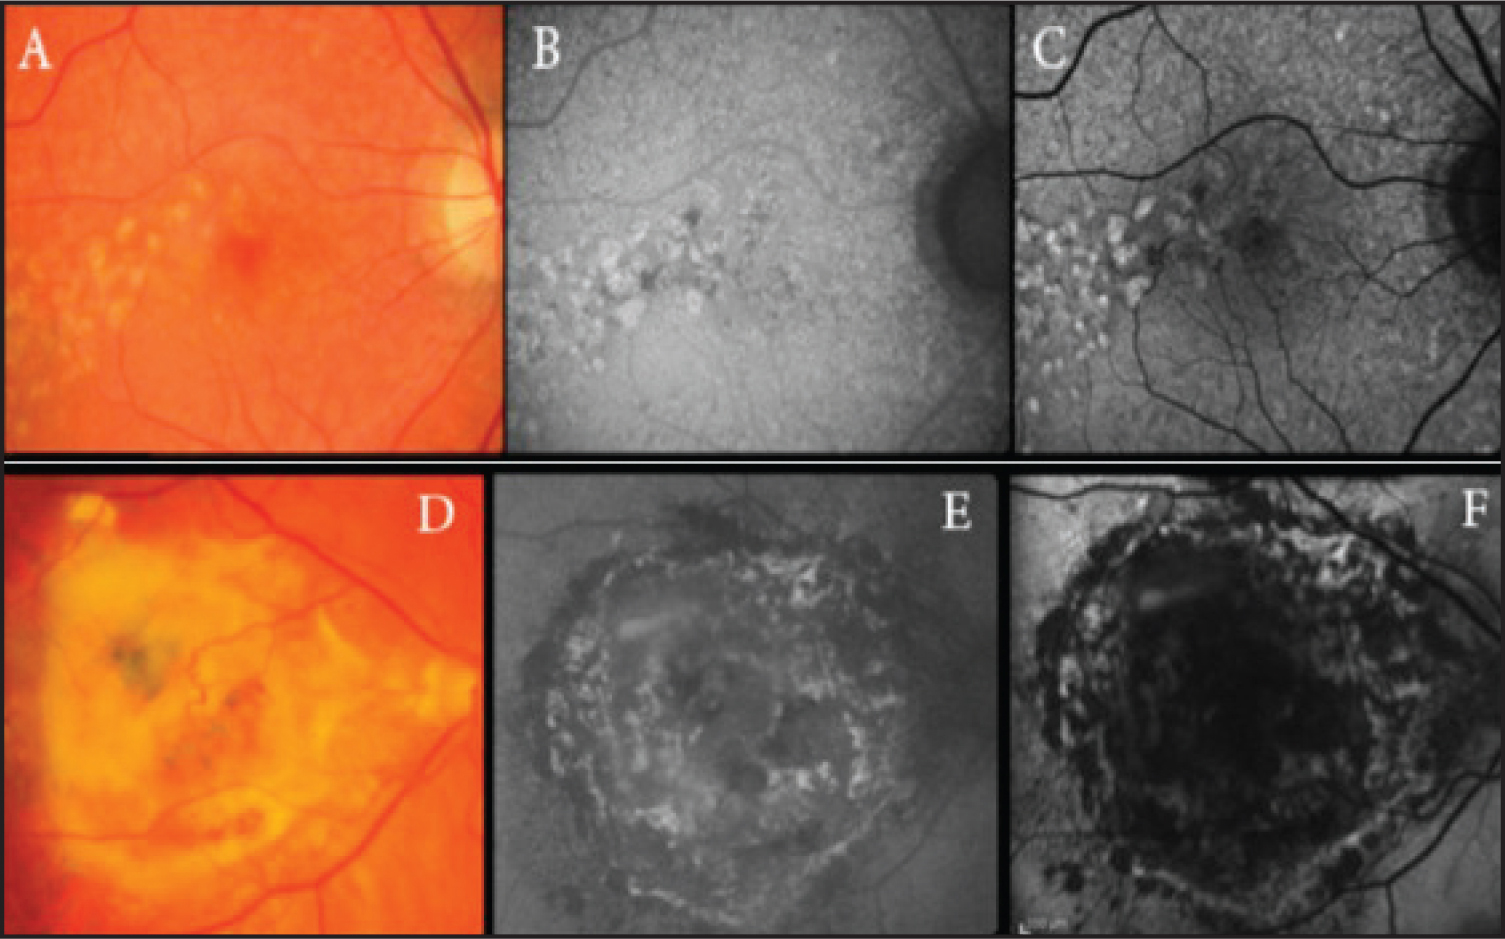 Imaging in age-related macular degeneration (AMD). (A–C) Color fundus, fundus camera (FC) fundus autofluorescence (FAF), and confocal scanning laser ophthalmoscope (cSLO) FAF images of drusen in nonexudative AMD. (D–F) Fundus color, FC FAF, and cSLO FAF images of a fibrovascular lesion in exudative AMD. The foveal aspect of the fibrous tissue lesion shows hyper and hypoautofluorescence with the FC (E) and hypoautofluorescence with the cSLO (F). In the peripheral aspect of the lesion, the fibrous tissue exhibits hyper- and hypoautofluorescence with both the FC and cSLO techniques (E–F).